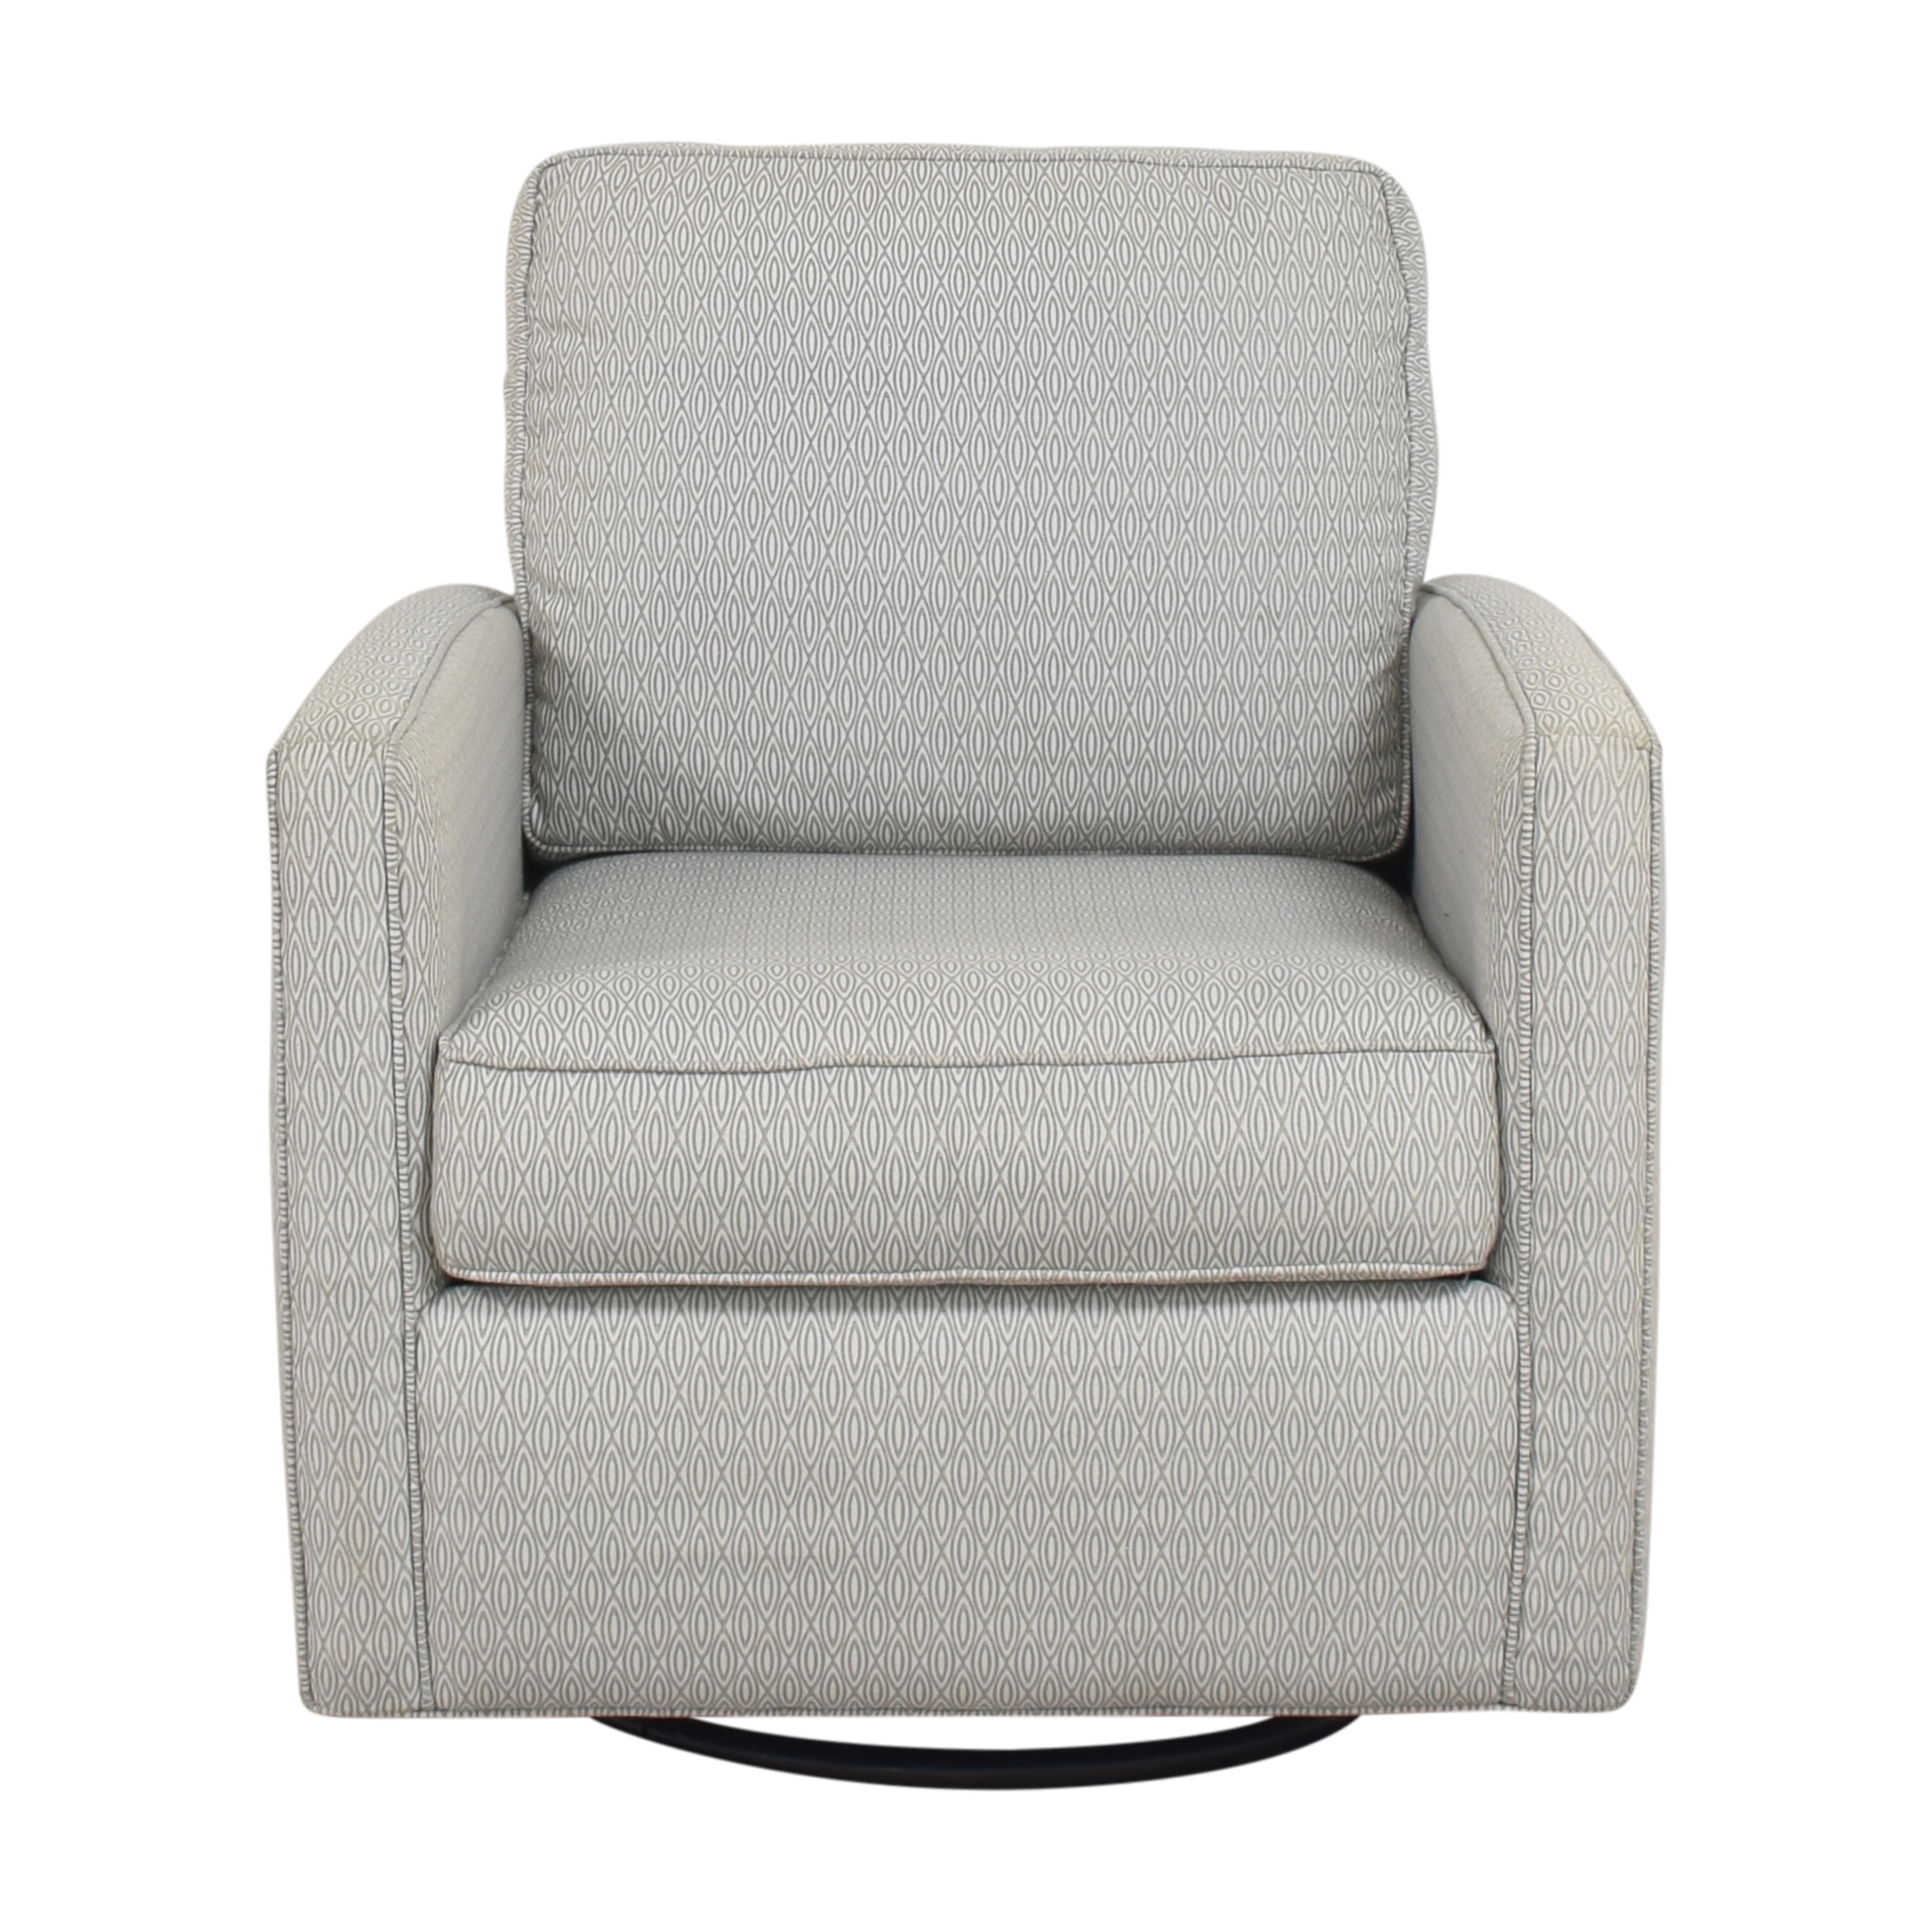 buy Younger Furniture Lincoln Swivel Glider Chair Younger Furniture Chairs